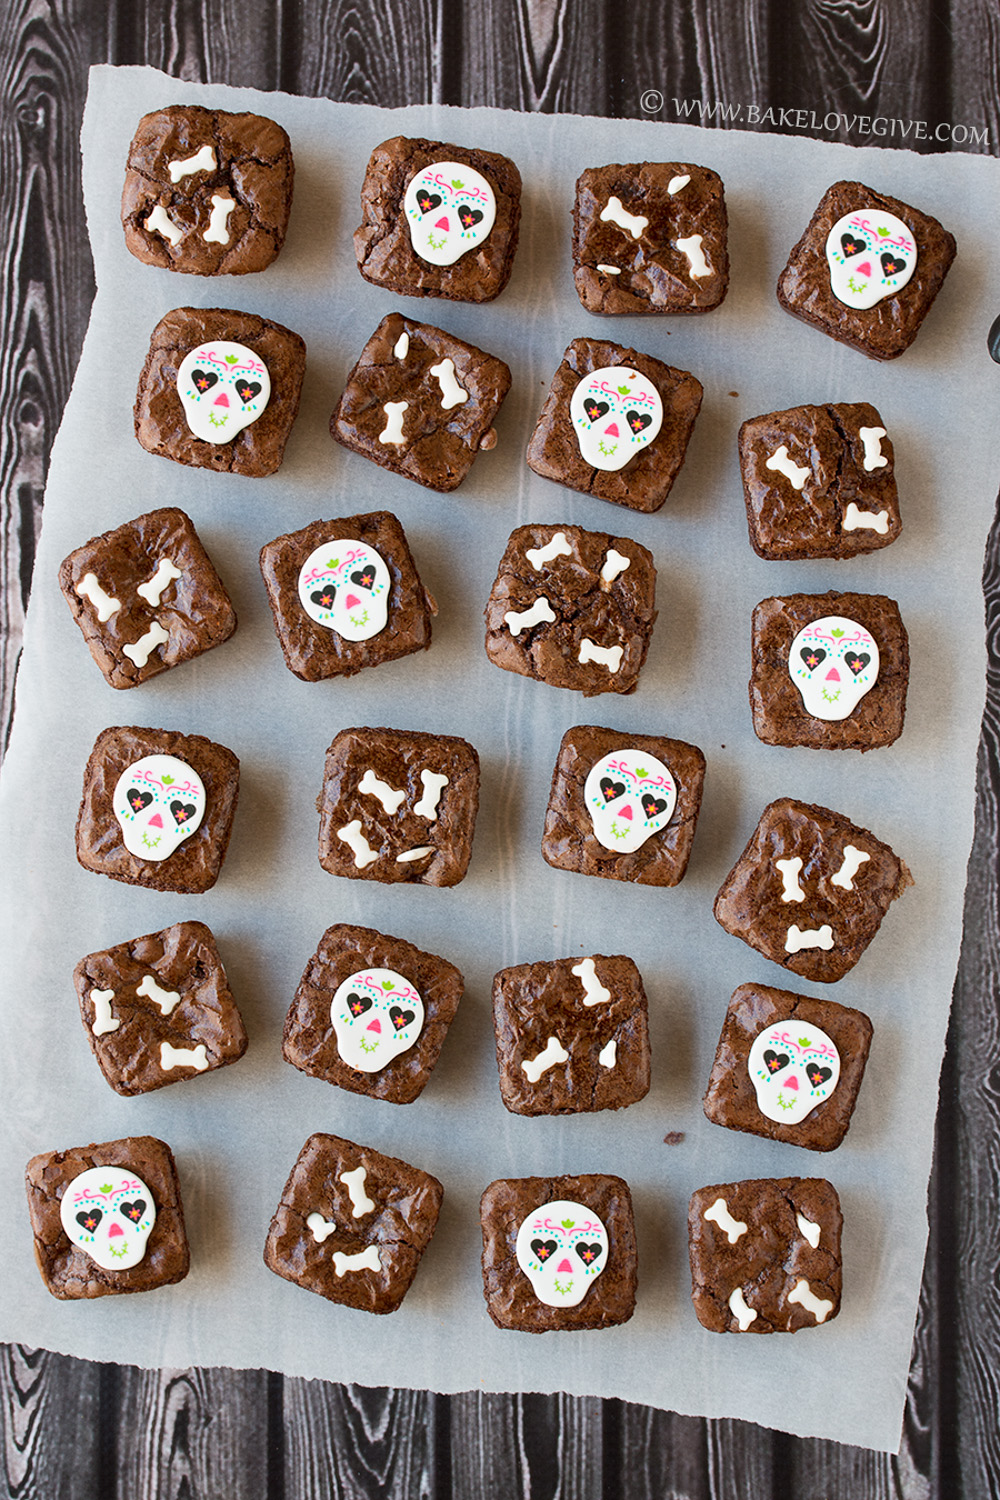 Dia De Los Muertos Brownie Bites Bake Love Give